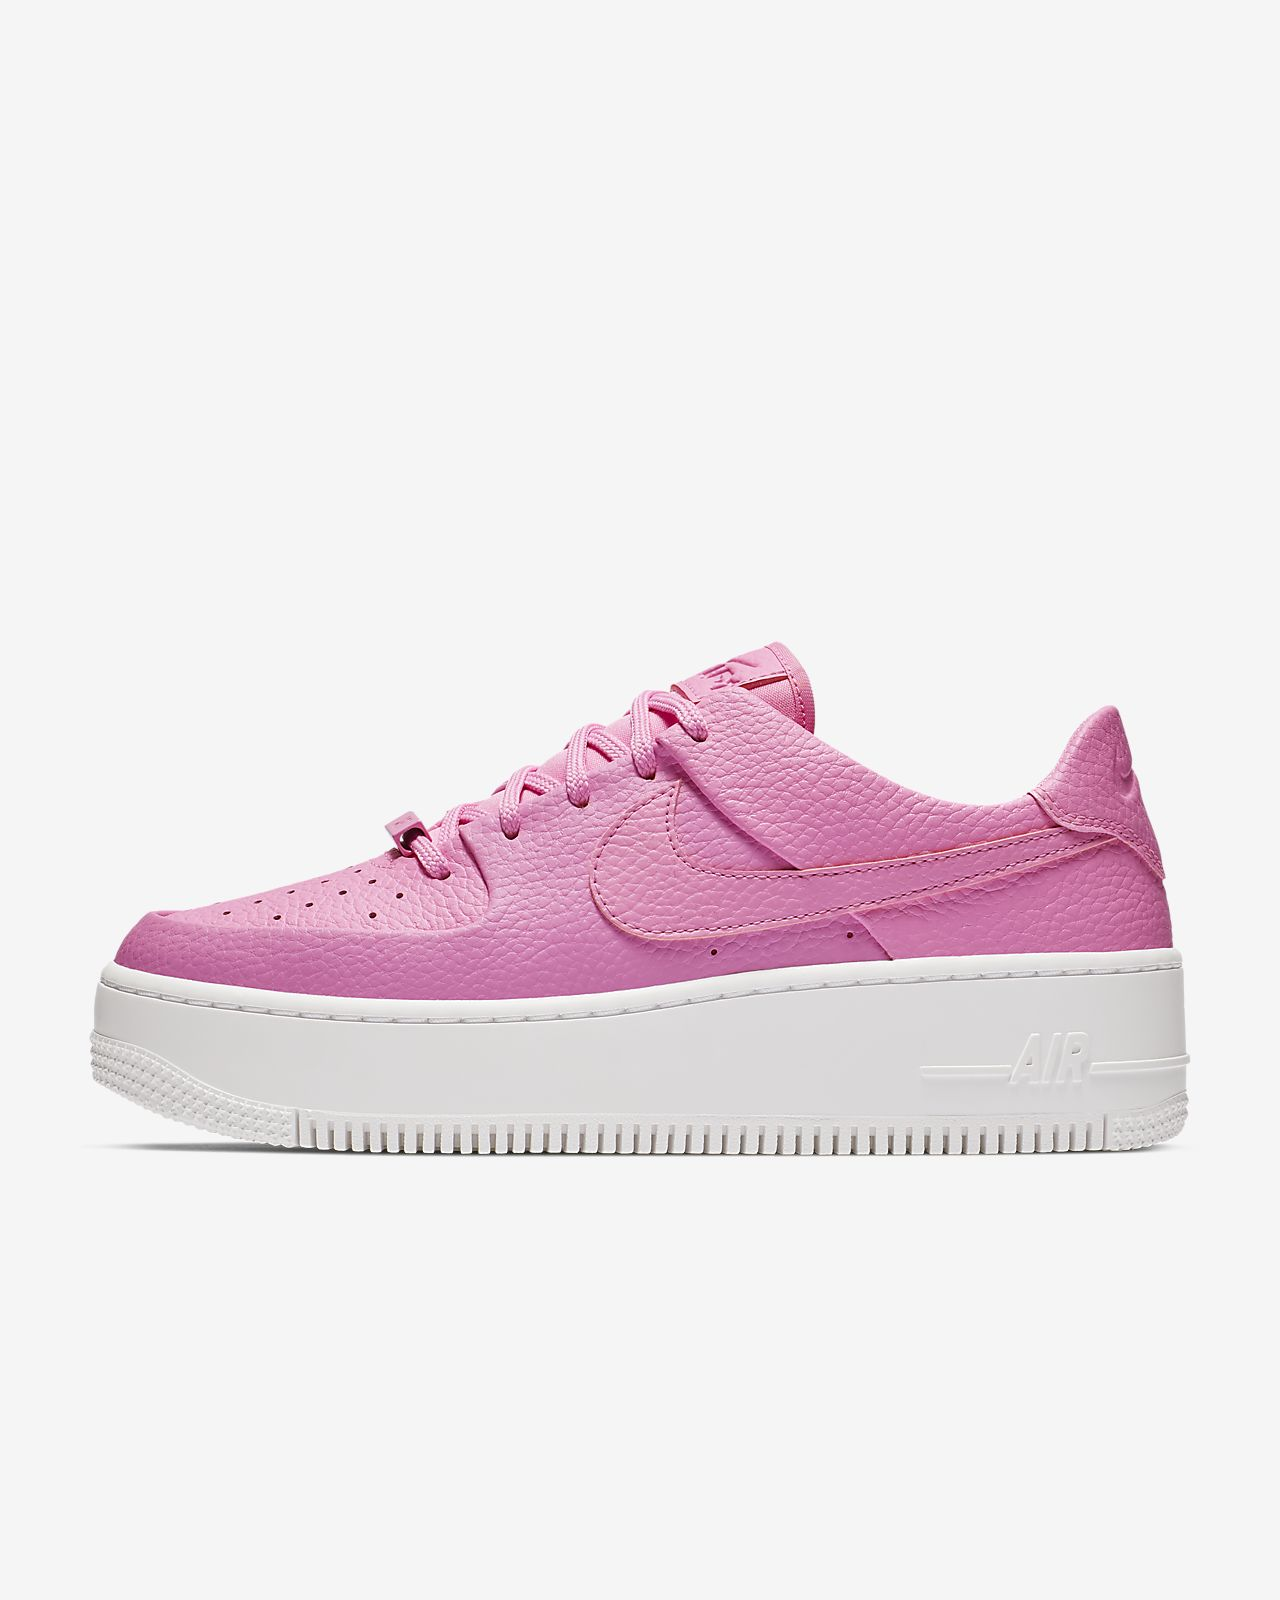 6513b5fb4f7 Nike Air Force 1 Sage Low Women s Shoe. Nike.com